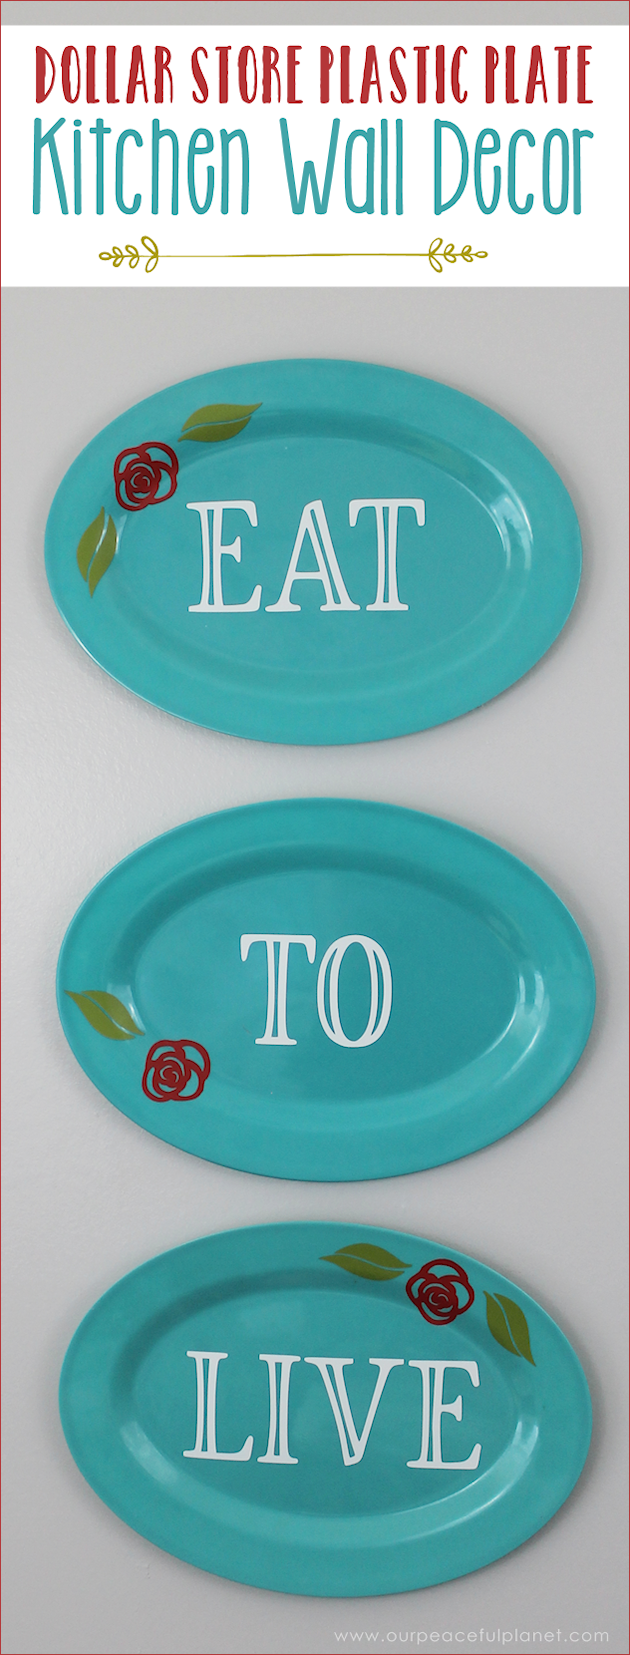 Darling Dollar Store Plastic Plate Kitchen Wall Decor ·